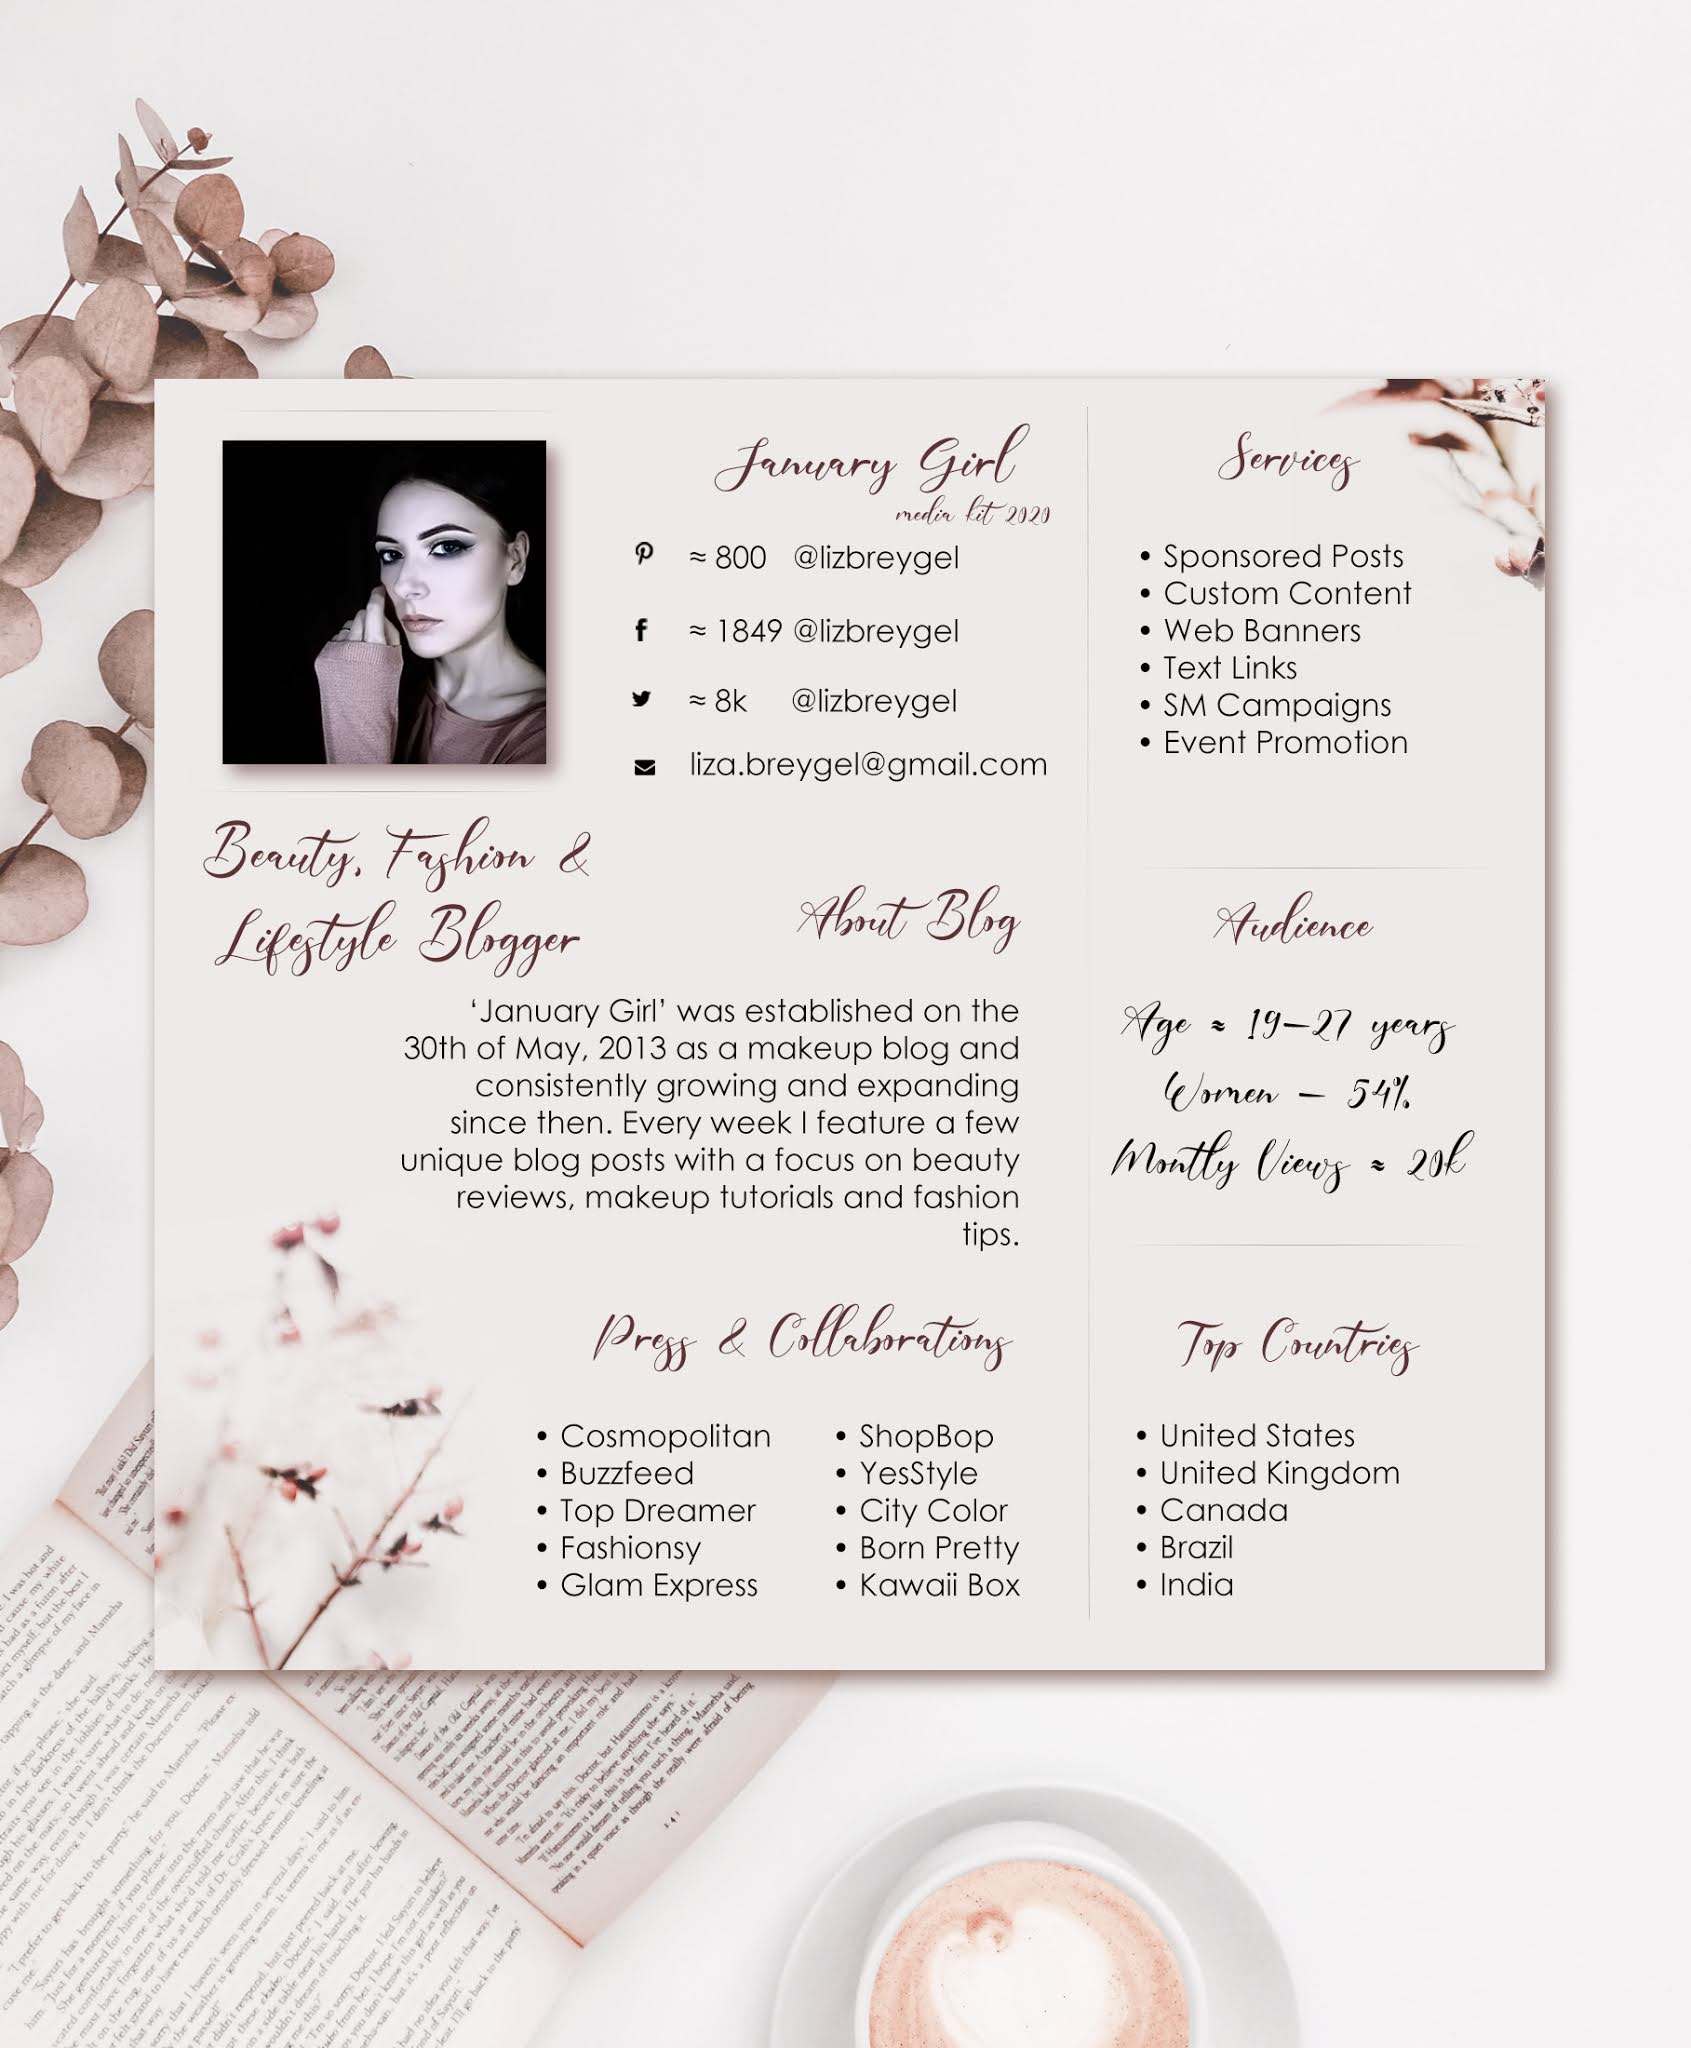 January Girl blog media kit 2020